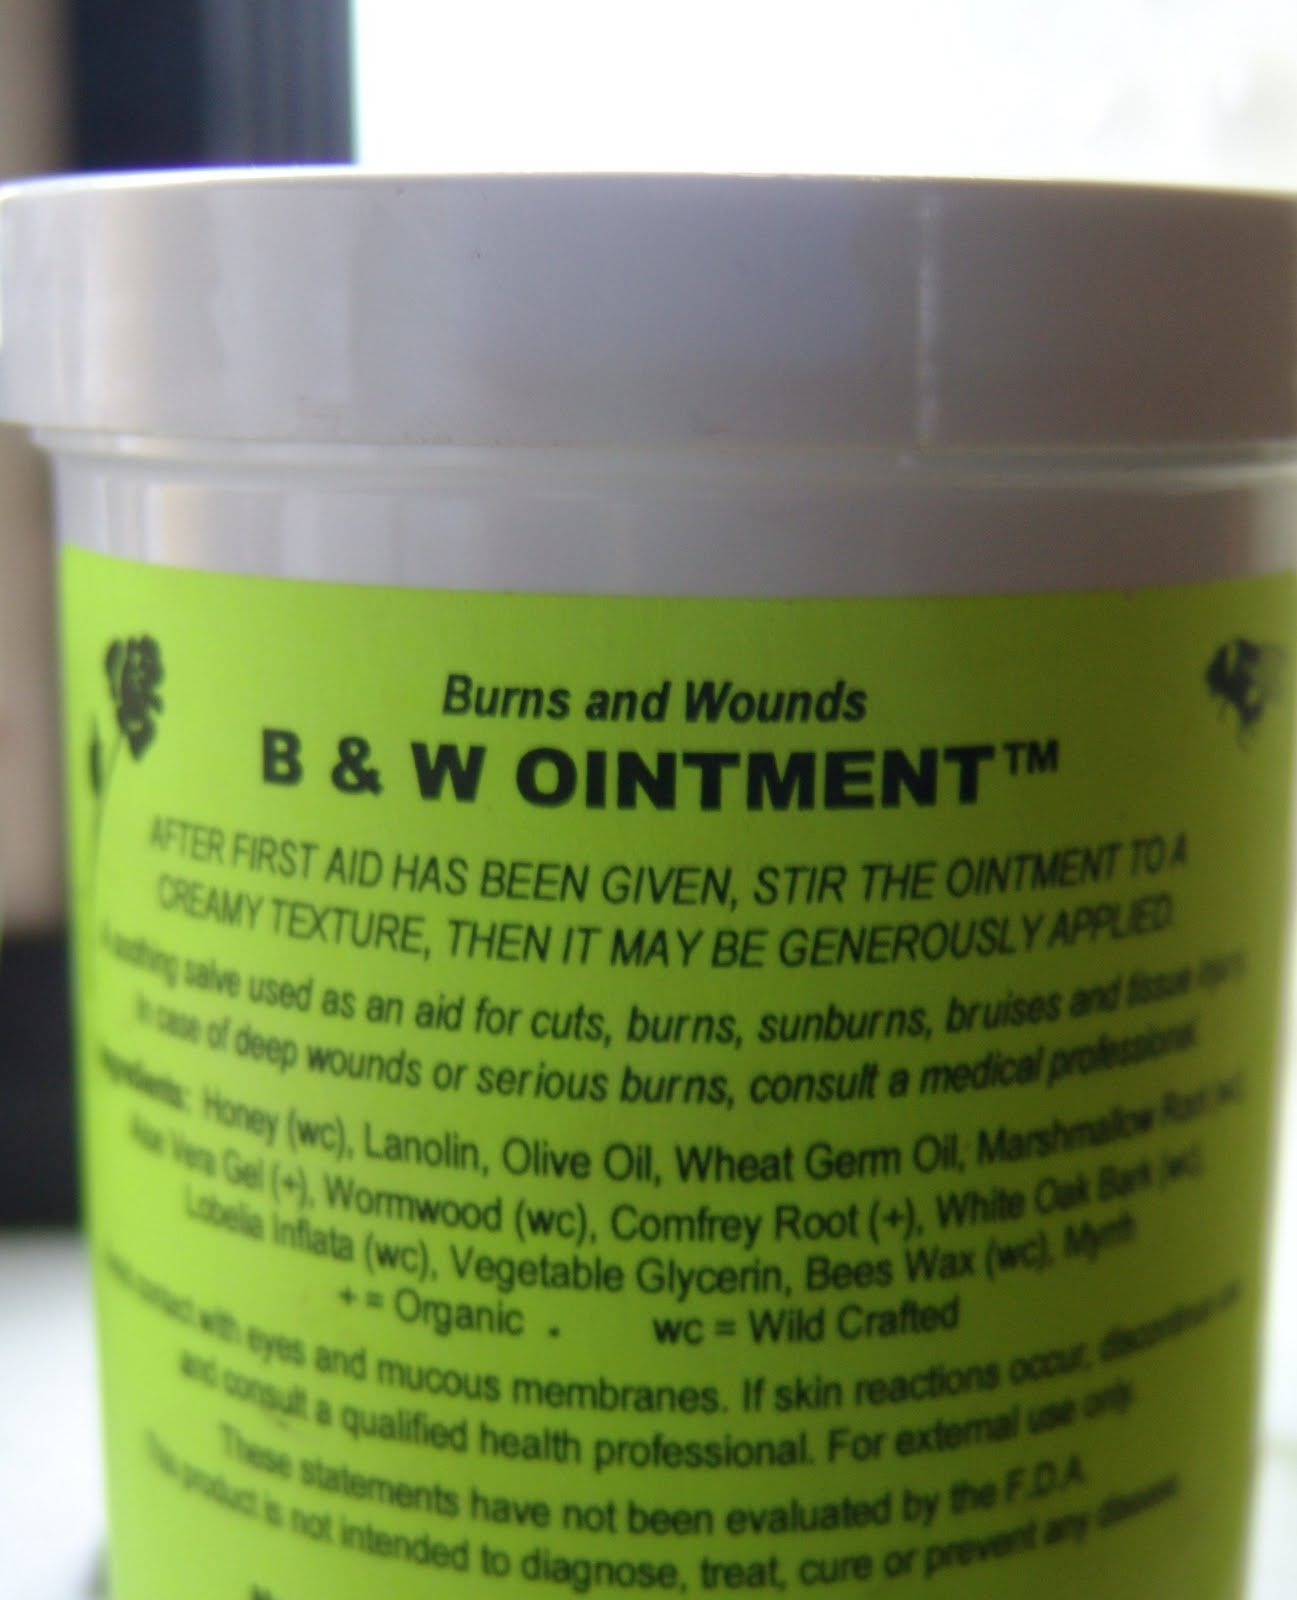 B&W - Burn and Wound Salve